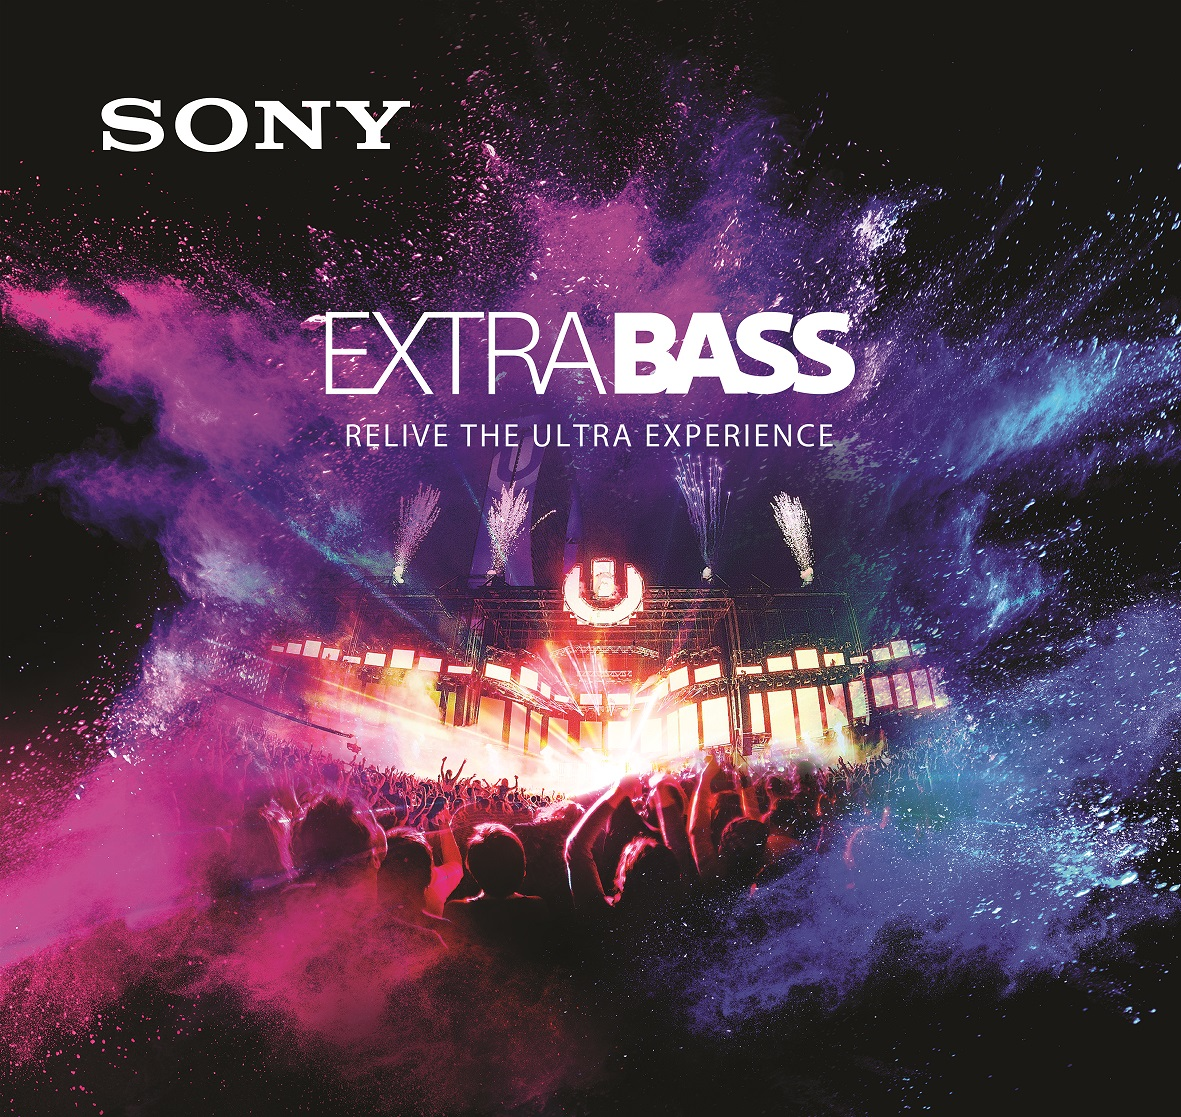 Power Up the ULTRA Experience with Sony's EXTRA BASS™